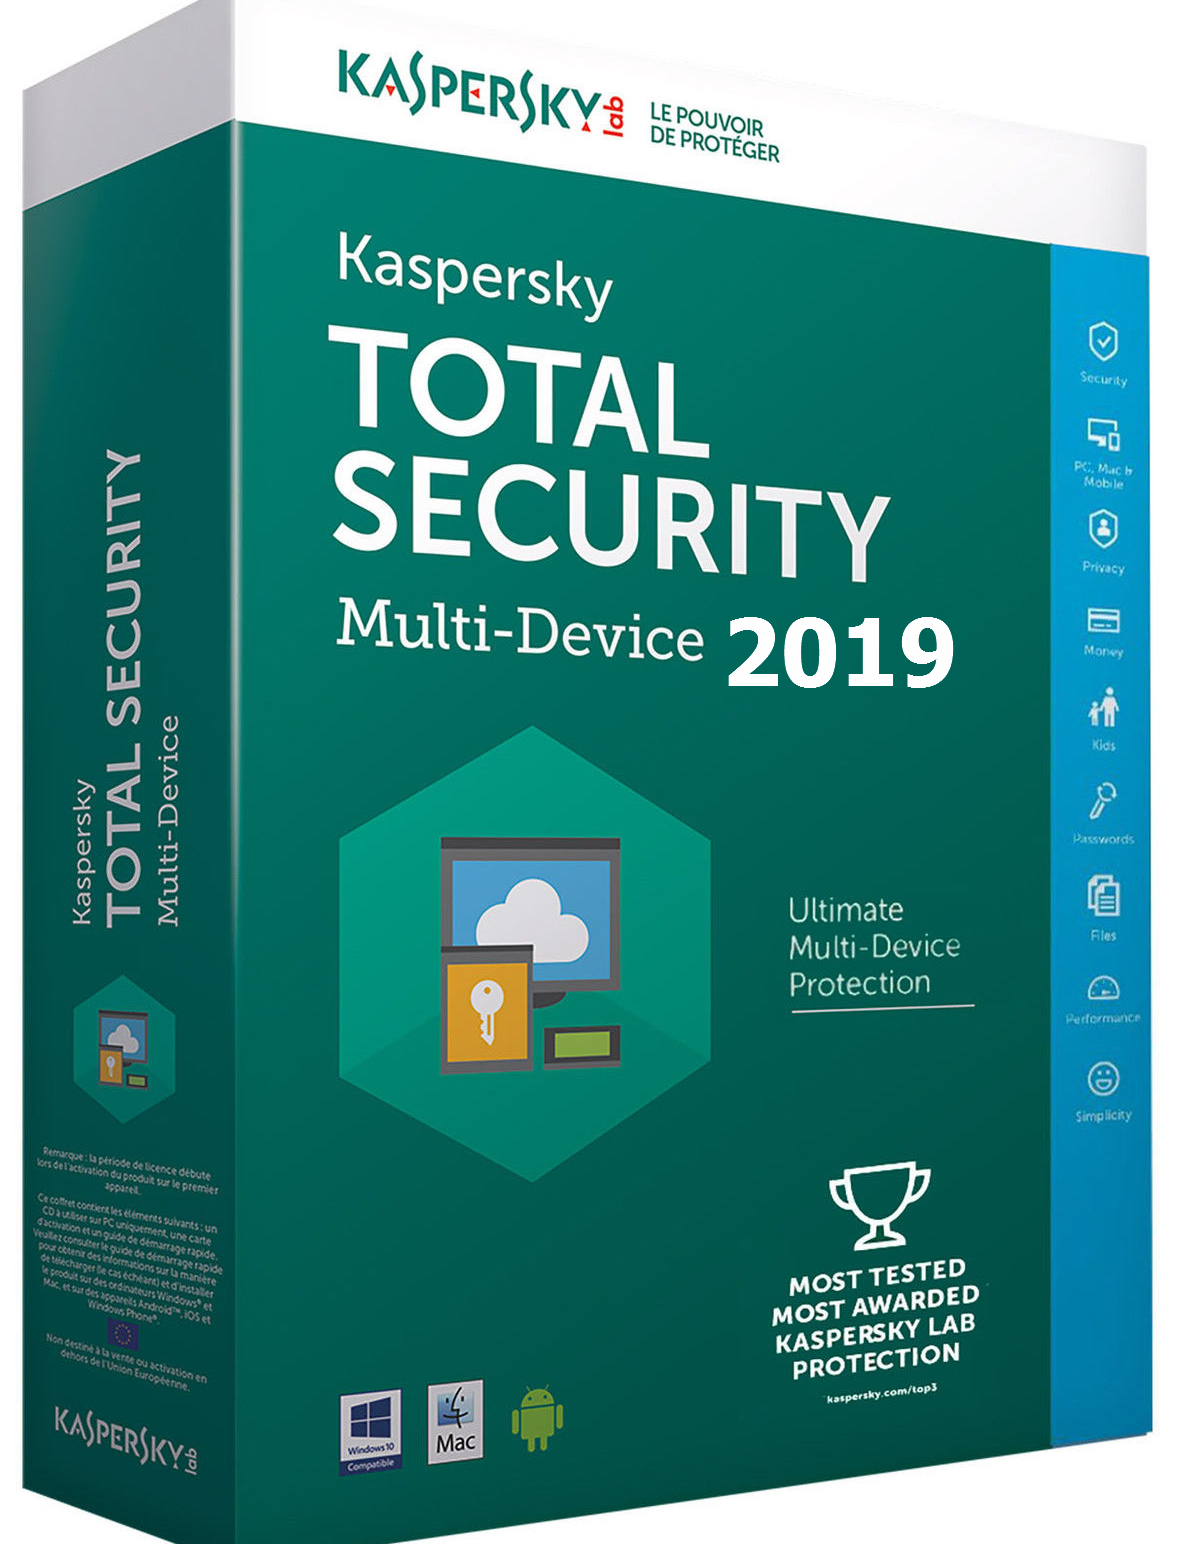 Kaspersky Total Security 2019 Activation Code For 1 Year